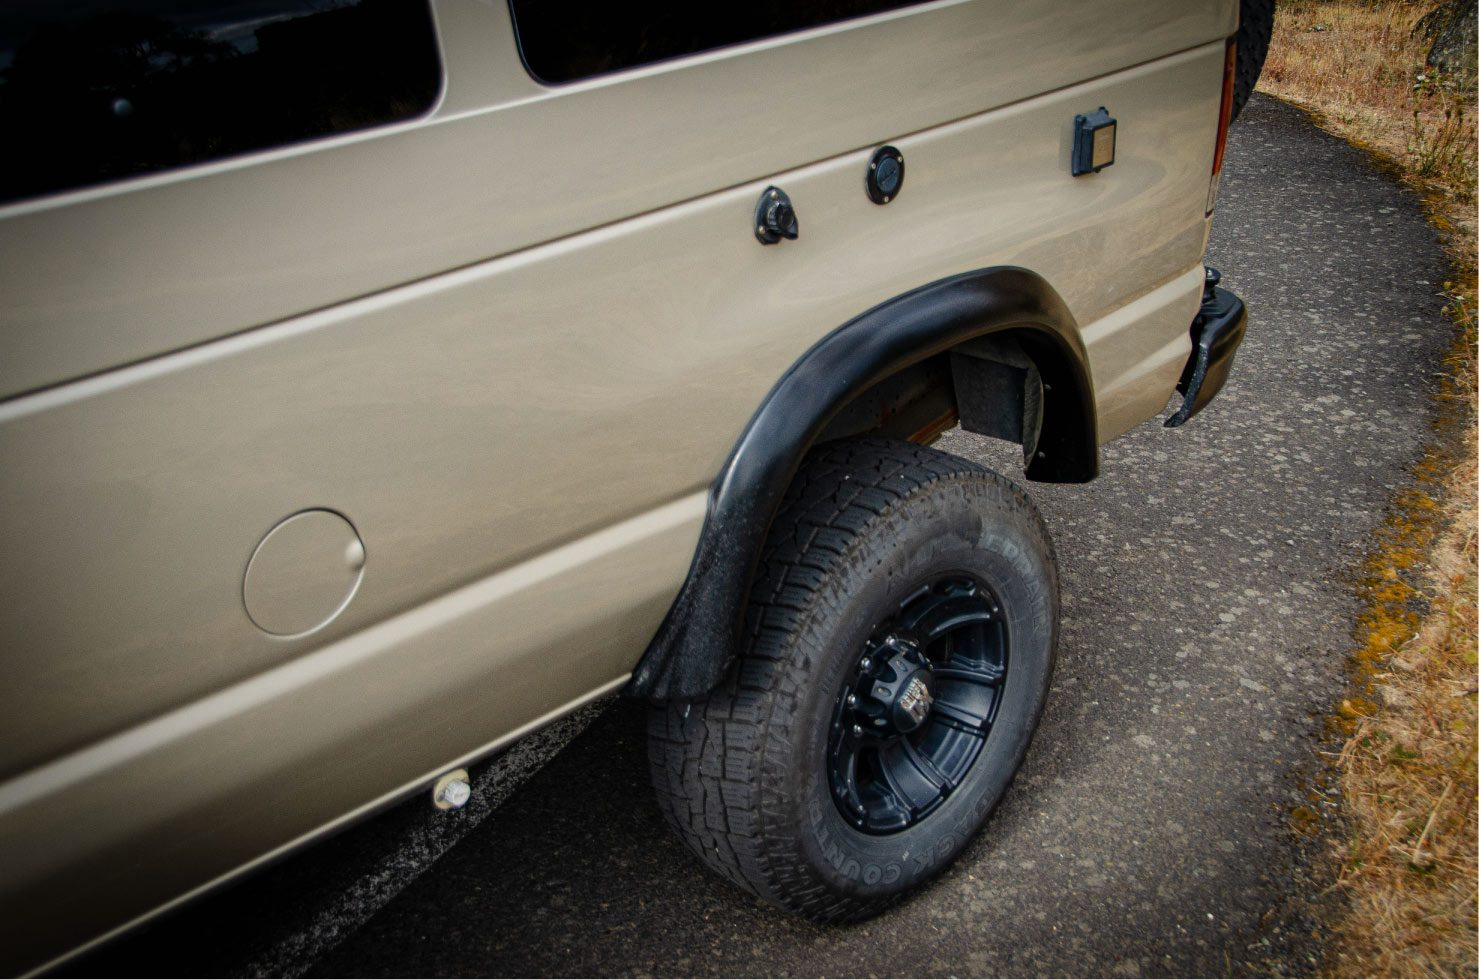 Tires, wheels, shore power and water hook up on a Ford E-Series 4x4 Econoline Sportsmobile RB50 Layout Campervan conversion for sale built by Van Specialties